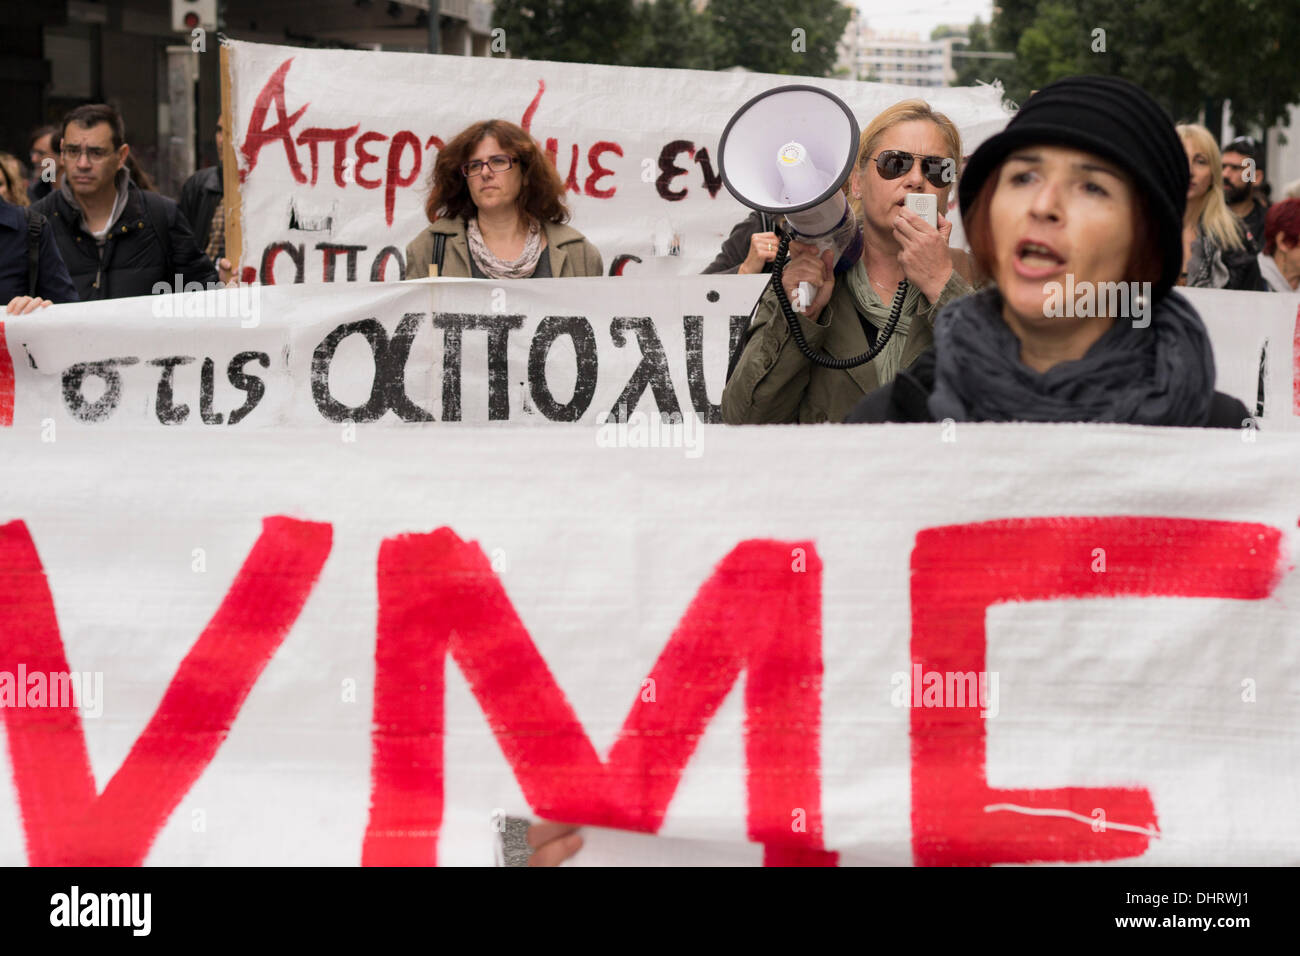 Athens, Greece. 14th November 2013. Protesters hold banners and shout slogans against the Greek government, as they march in protest of the public television, ERT's shut down and the, more than 4,000, upcoming layoffs ordered by Greece's lenders. Credit:  Nikolas Georgiou / Alamy Live News - Stock Image